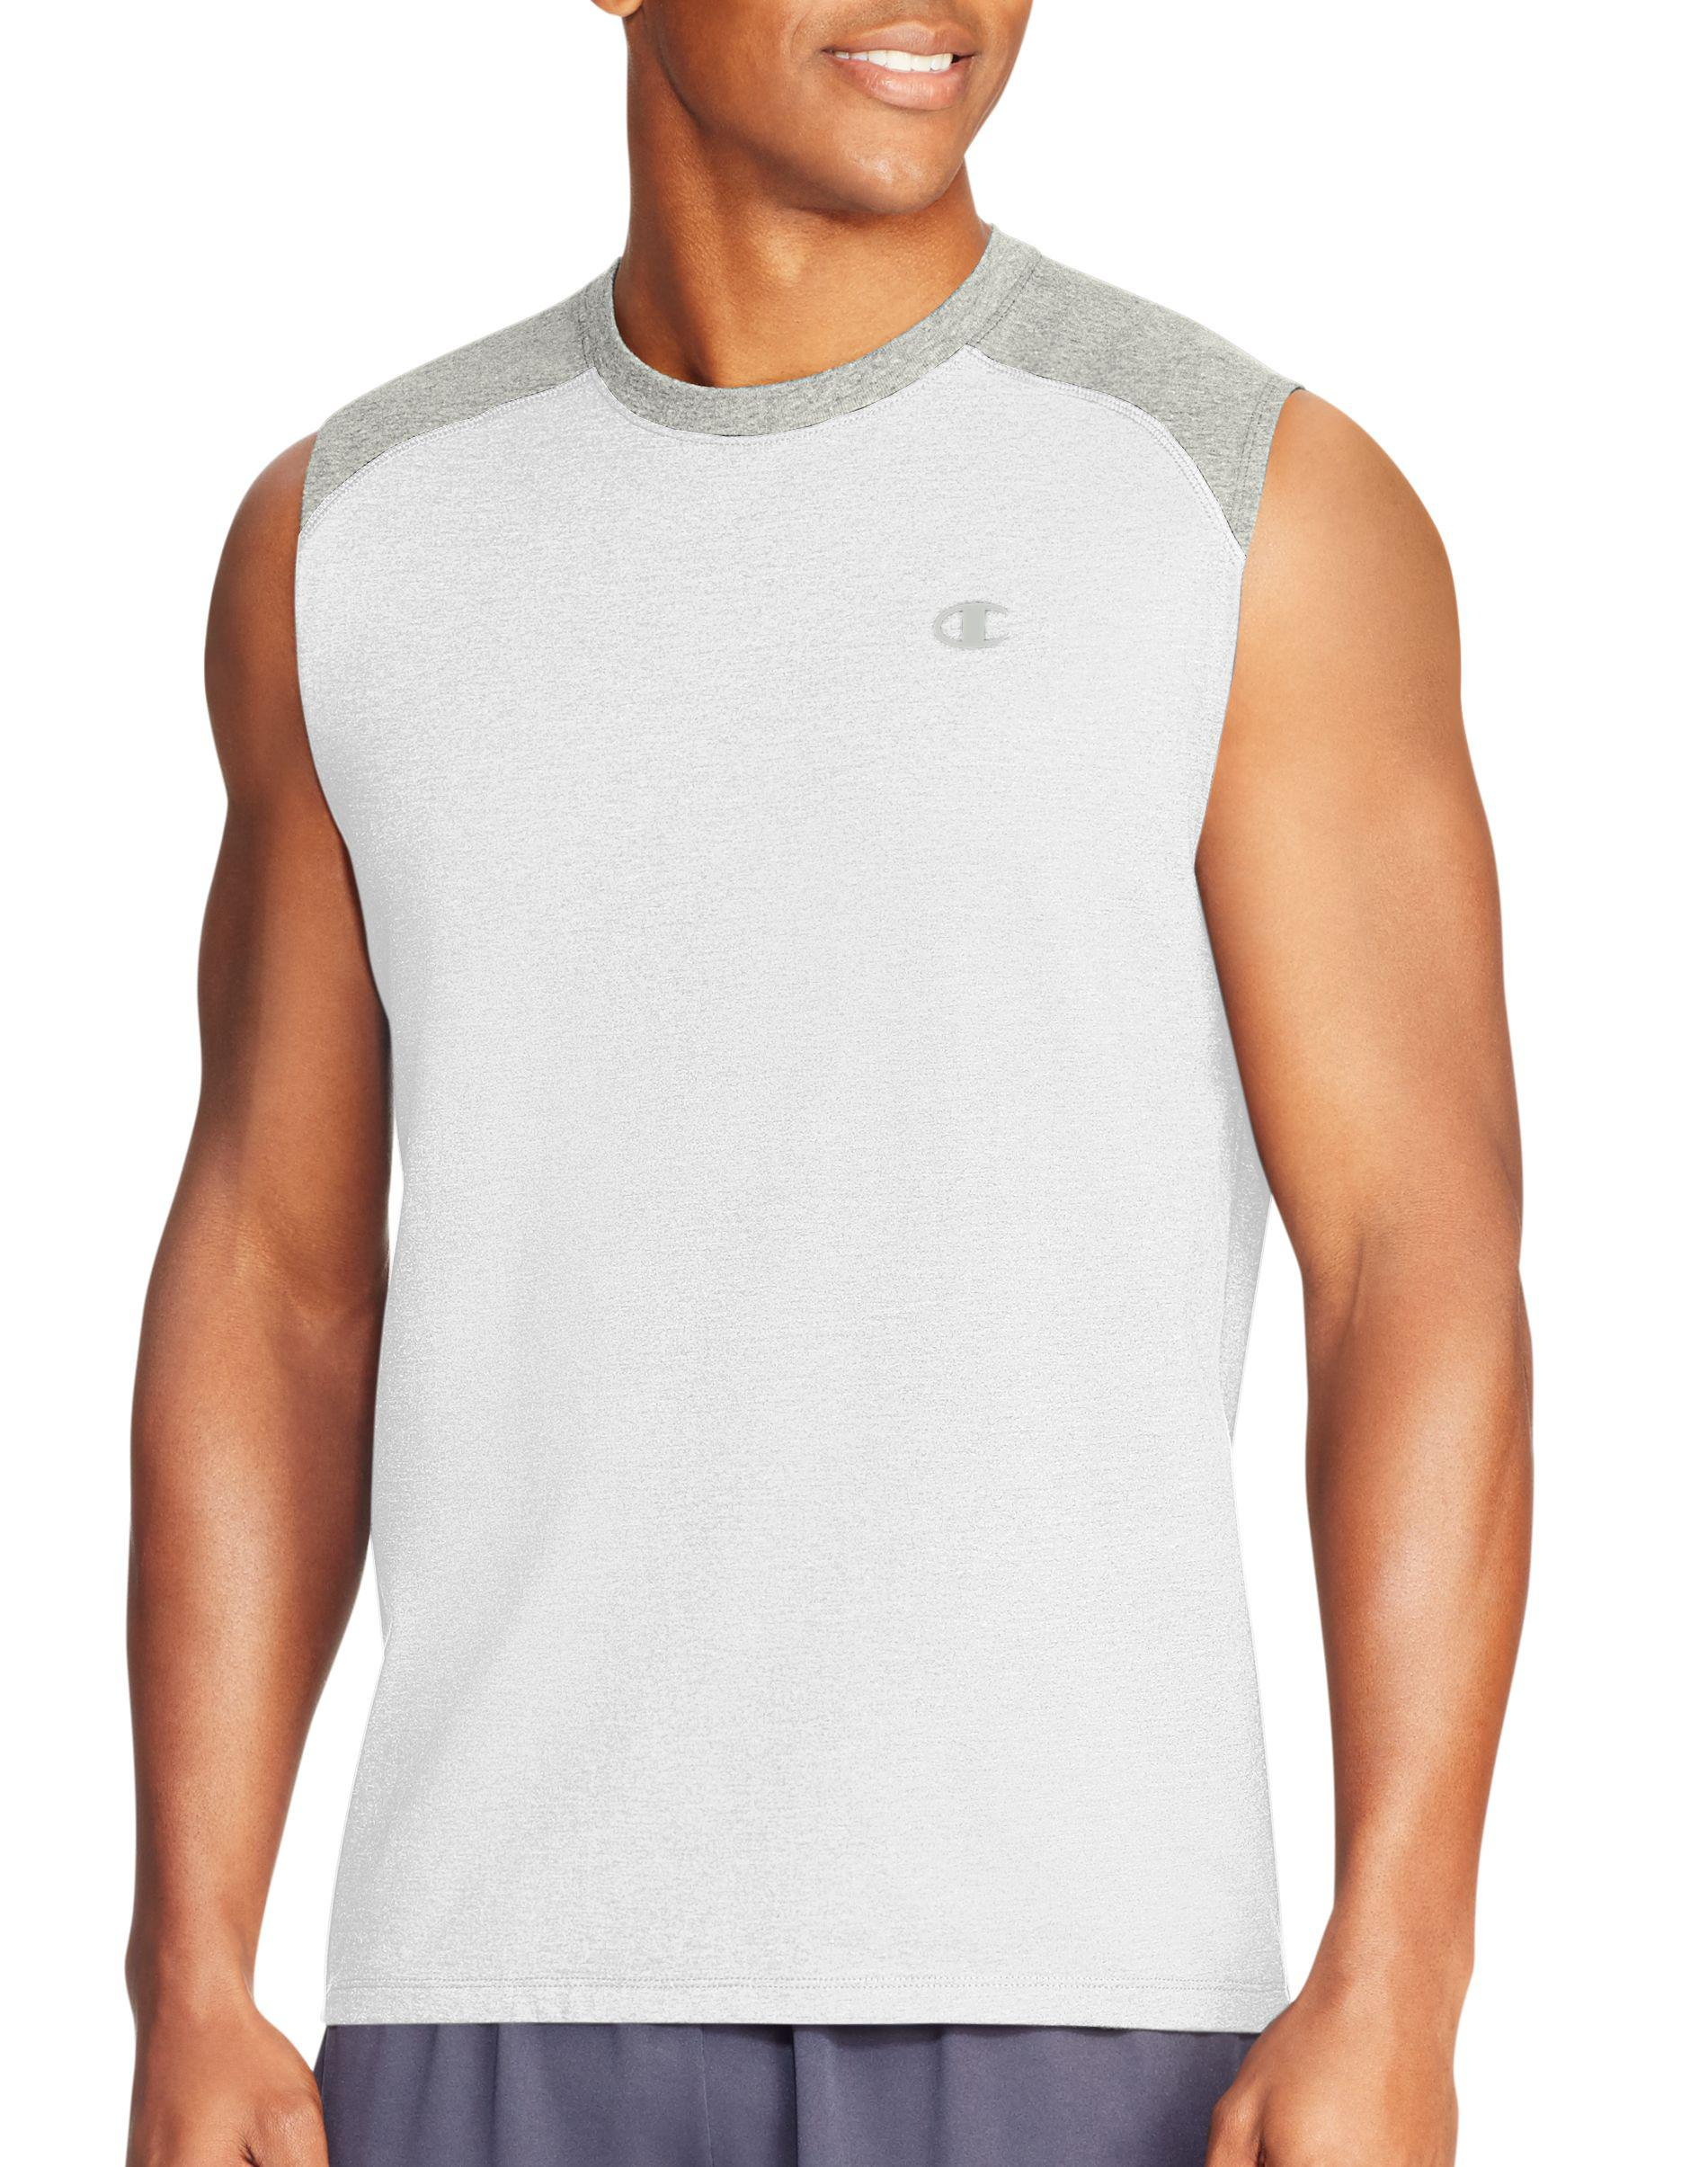 dbb9692195a9f Lyst - Champion Vapor® Cotton Muscle Tank in White for Men